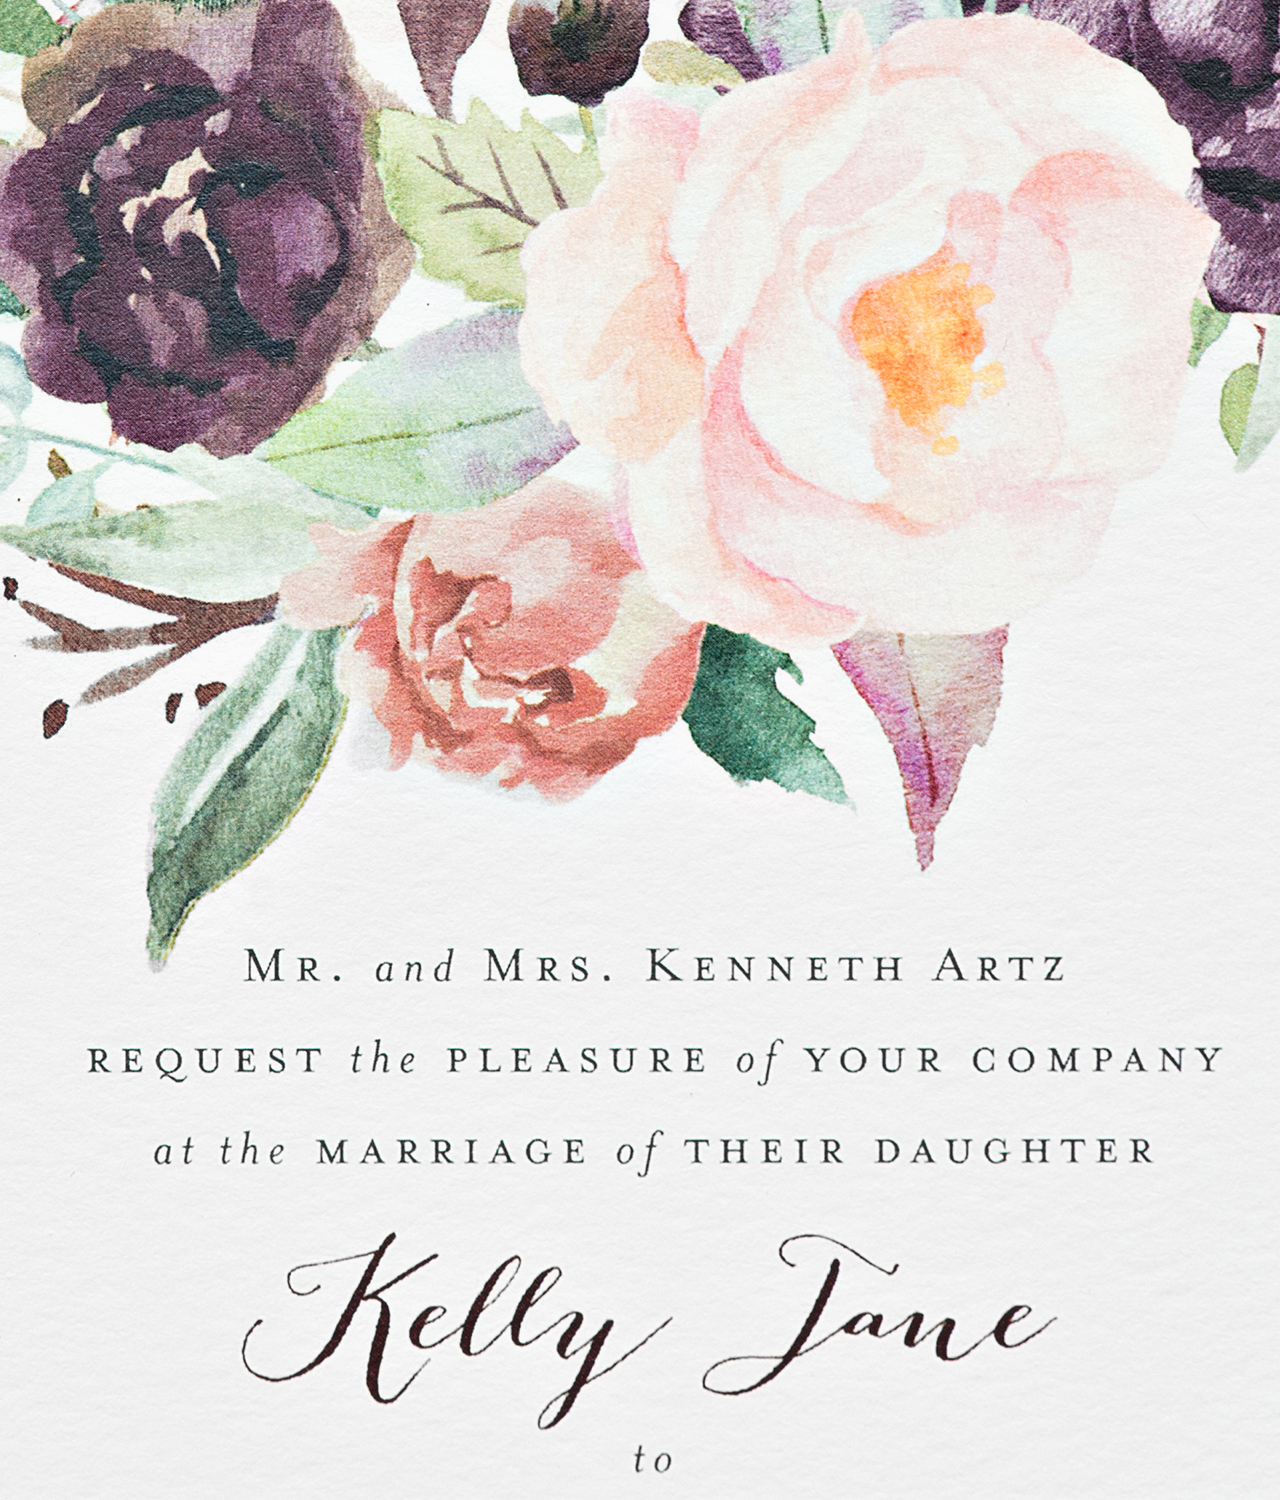 Cool New York City Inspired Floral Watercolor Wedding Invitations Suite Paperie Osbp 4 Watercolor Wedding Invitation Suite Watercolor Wedding Invitations Photoshop wedding Watercolor Wedding Invitations